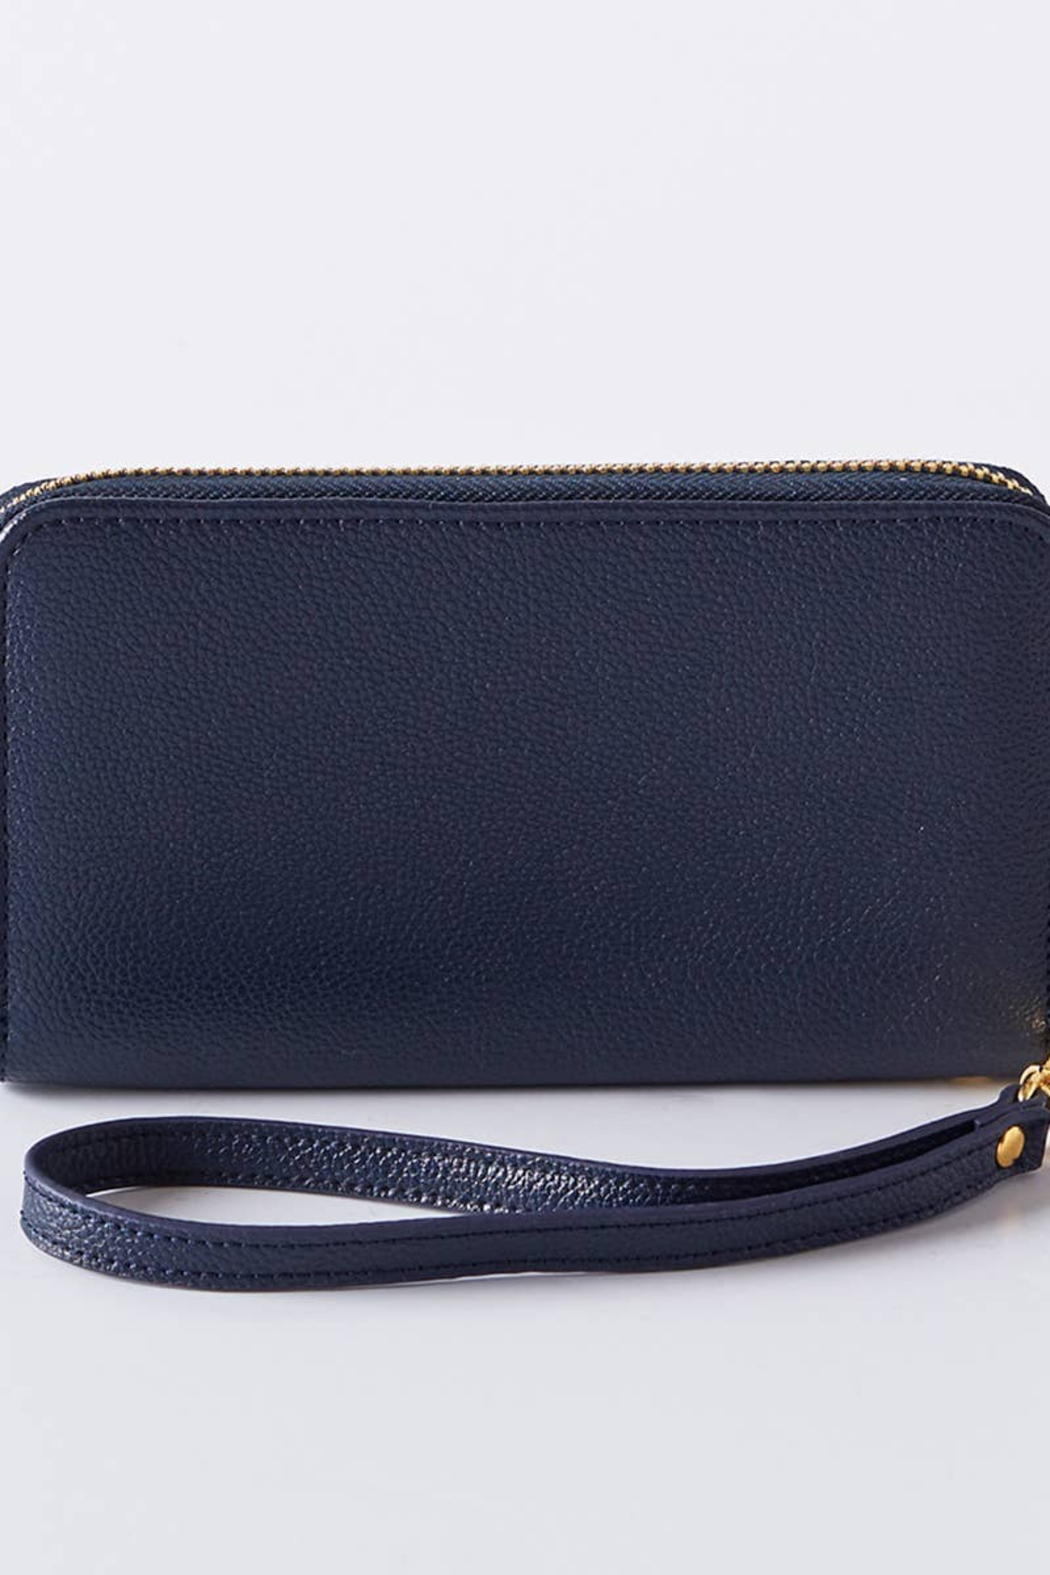 Boon Supply Vegan Leather Wristlet w/Wrist Strap - Front Cropped Image